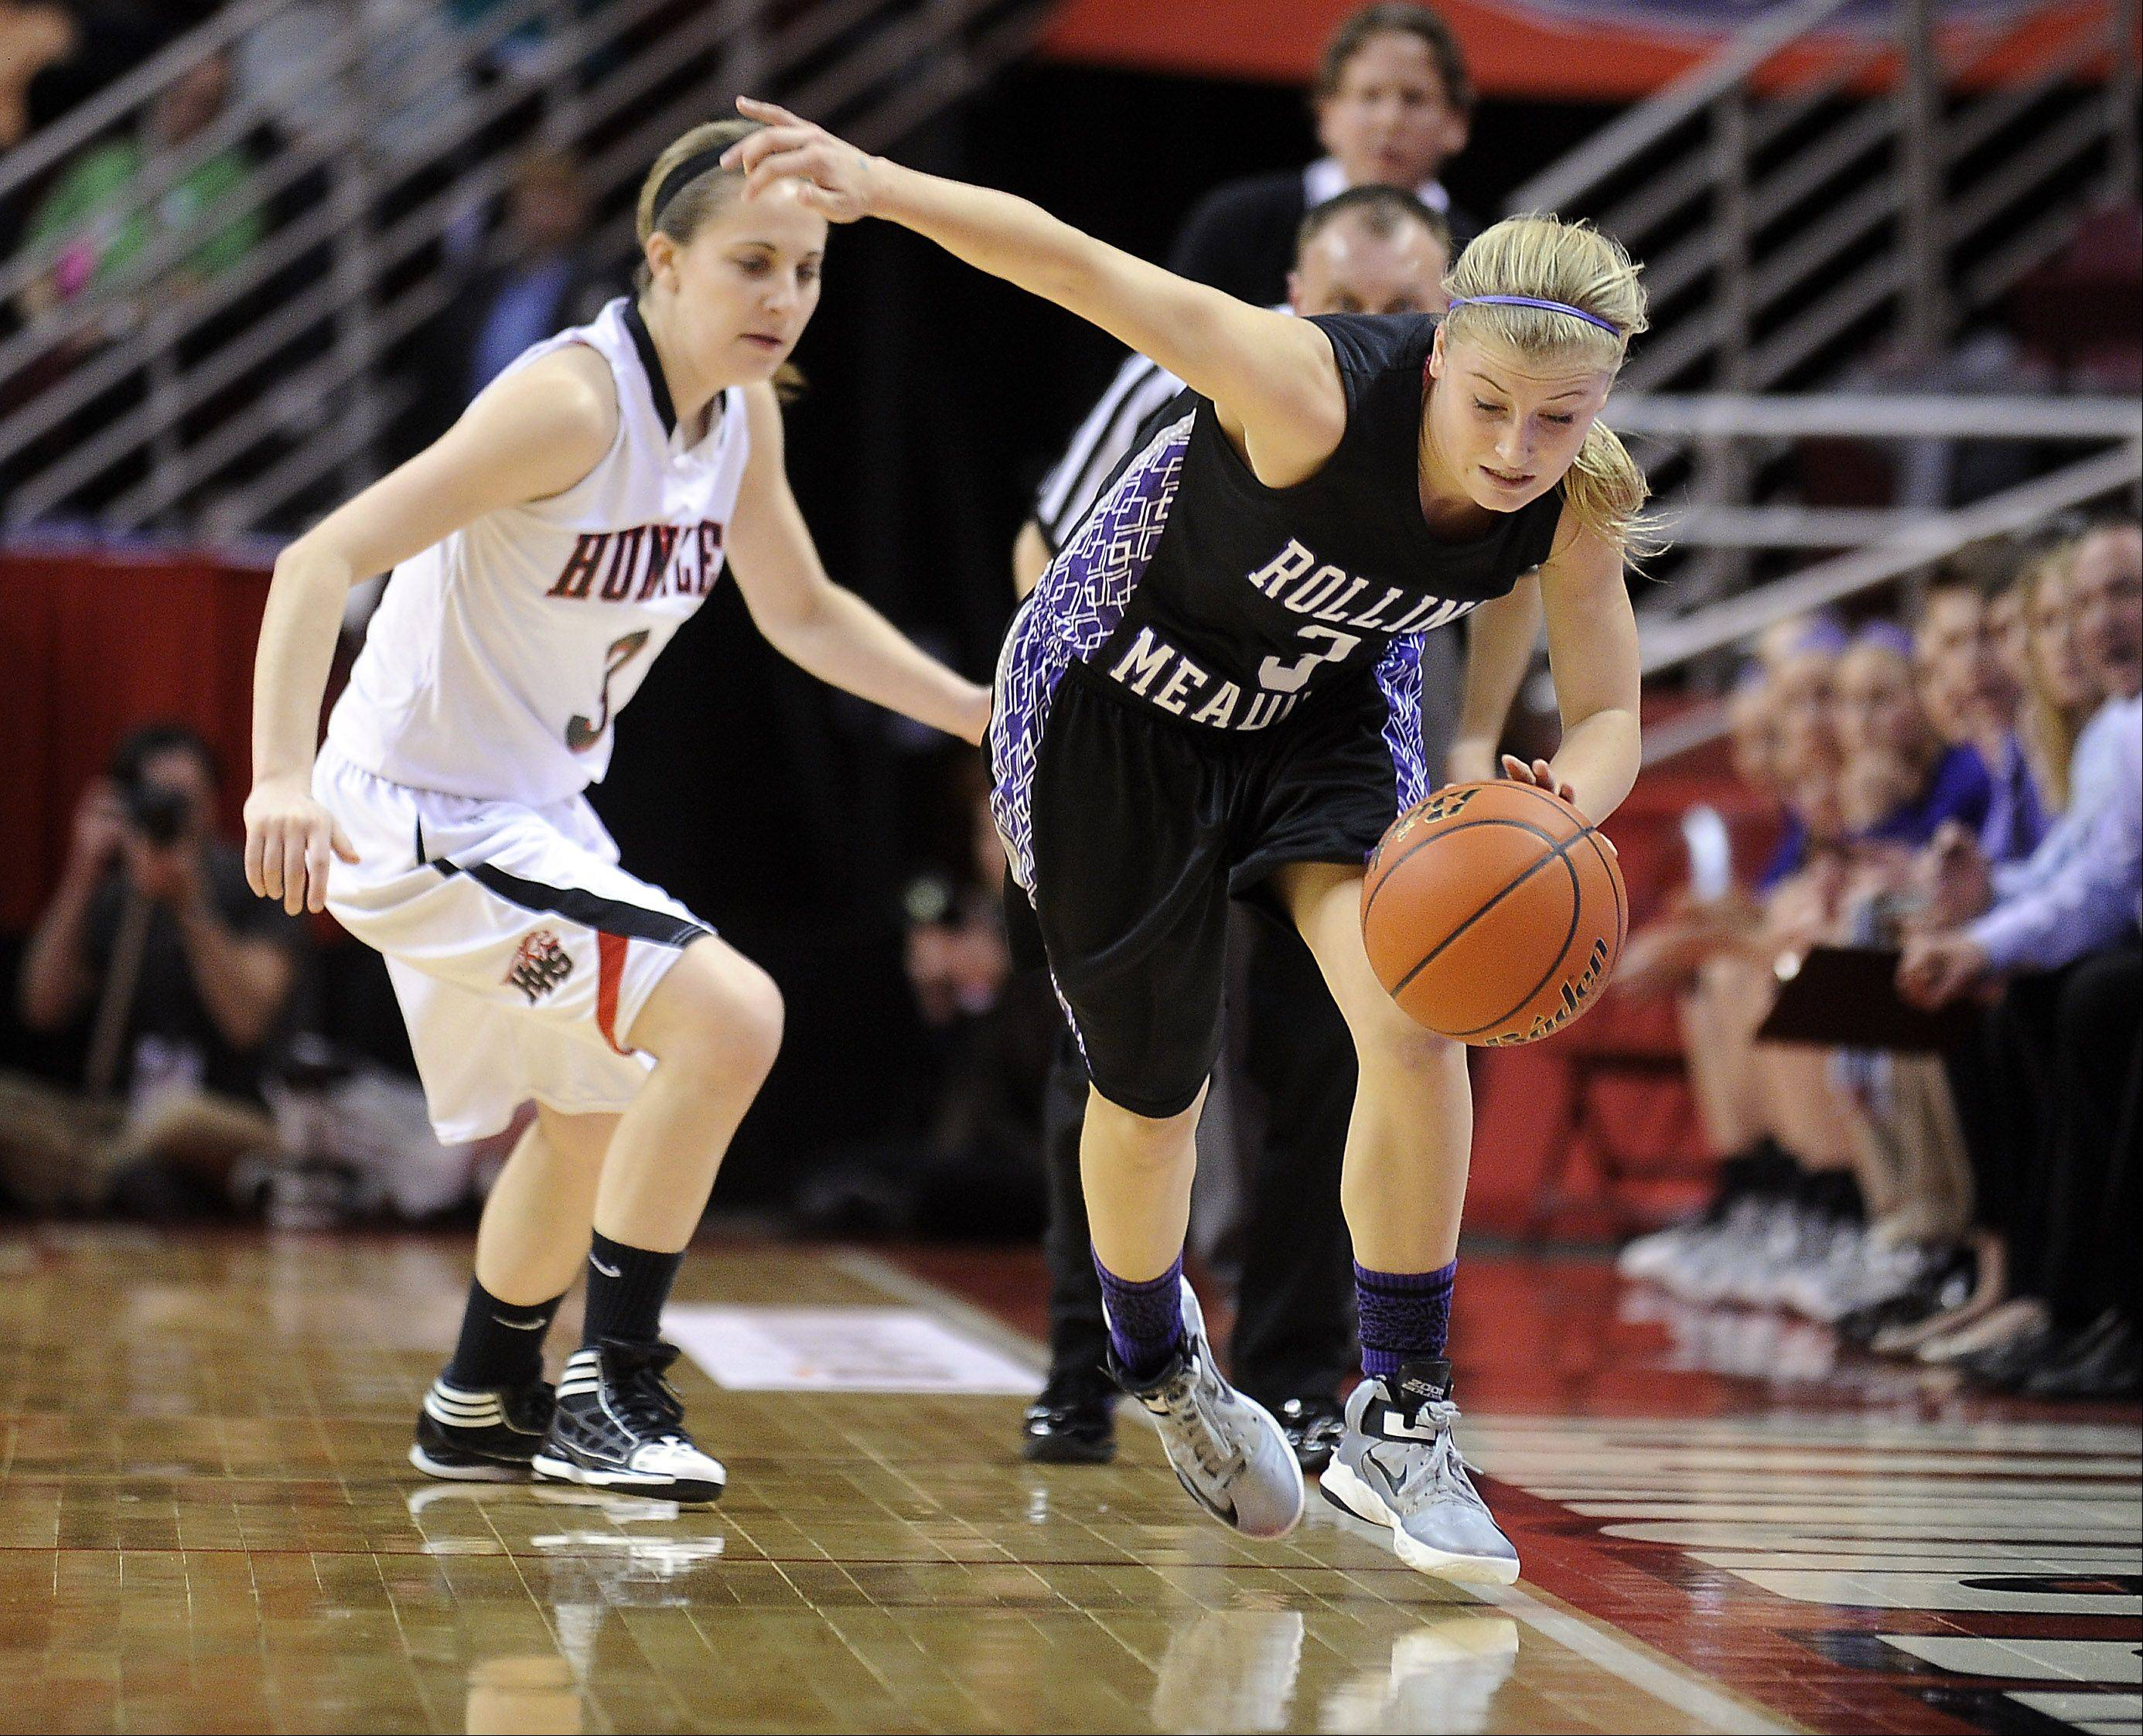 Rolling Meadows' Jackie Kemph tries to keep the ball in play as Huntley's Amanda Kaniewski applies pressure during the Class 4A girls basketball semifinals in Normal on Friday.